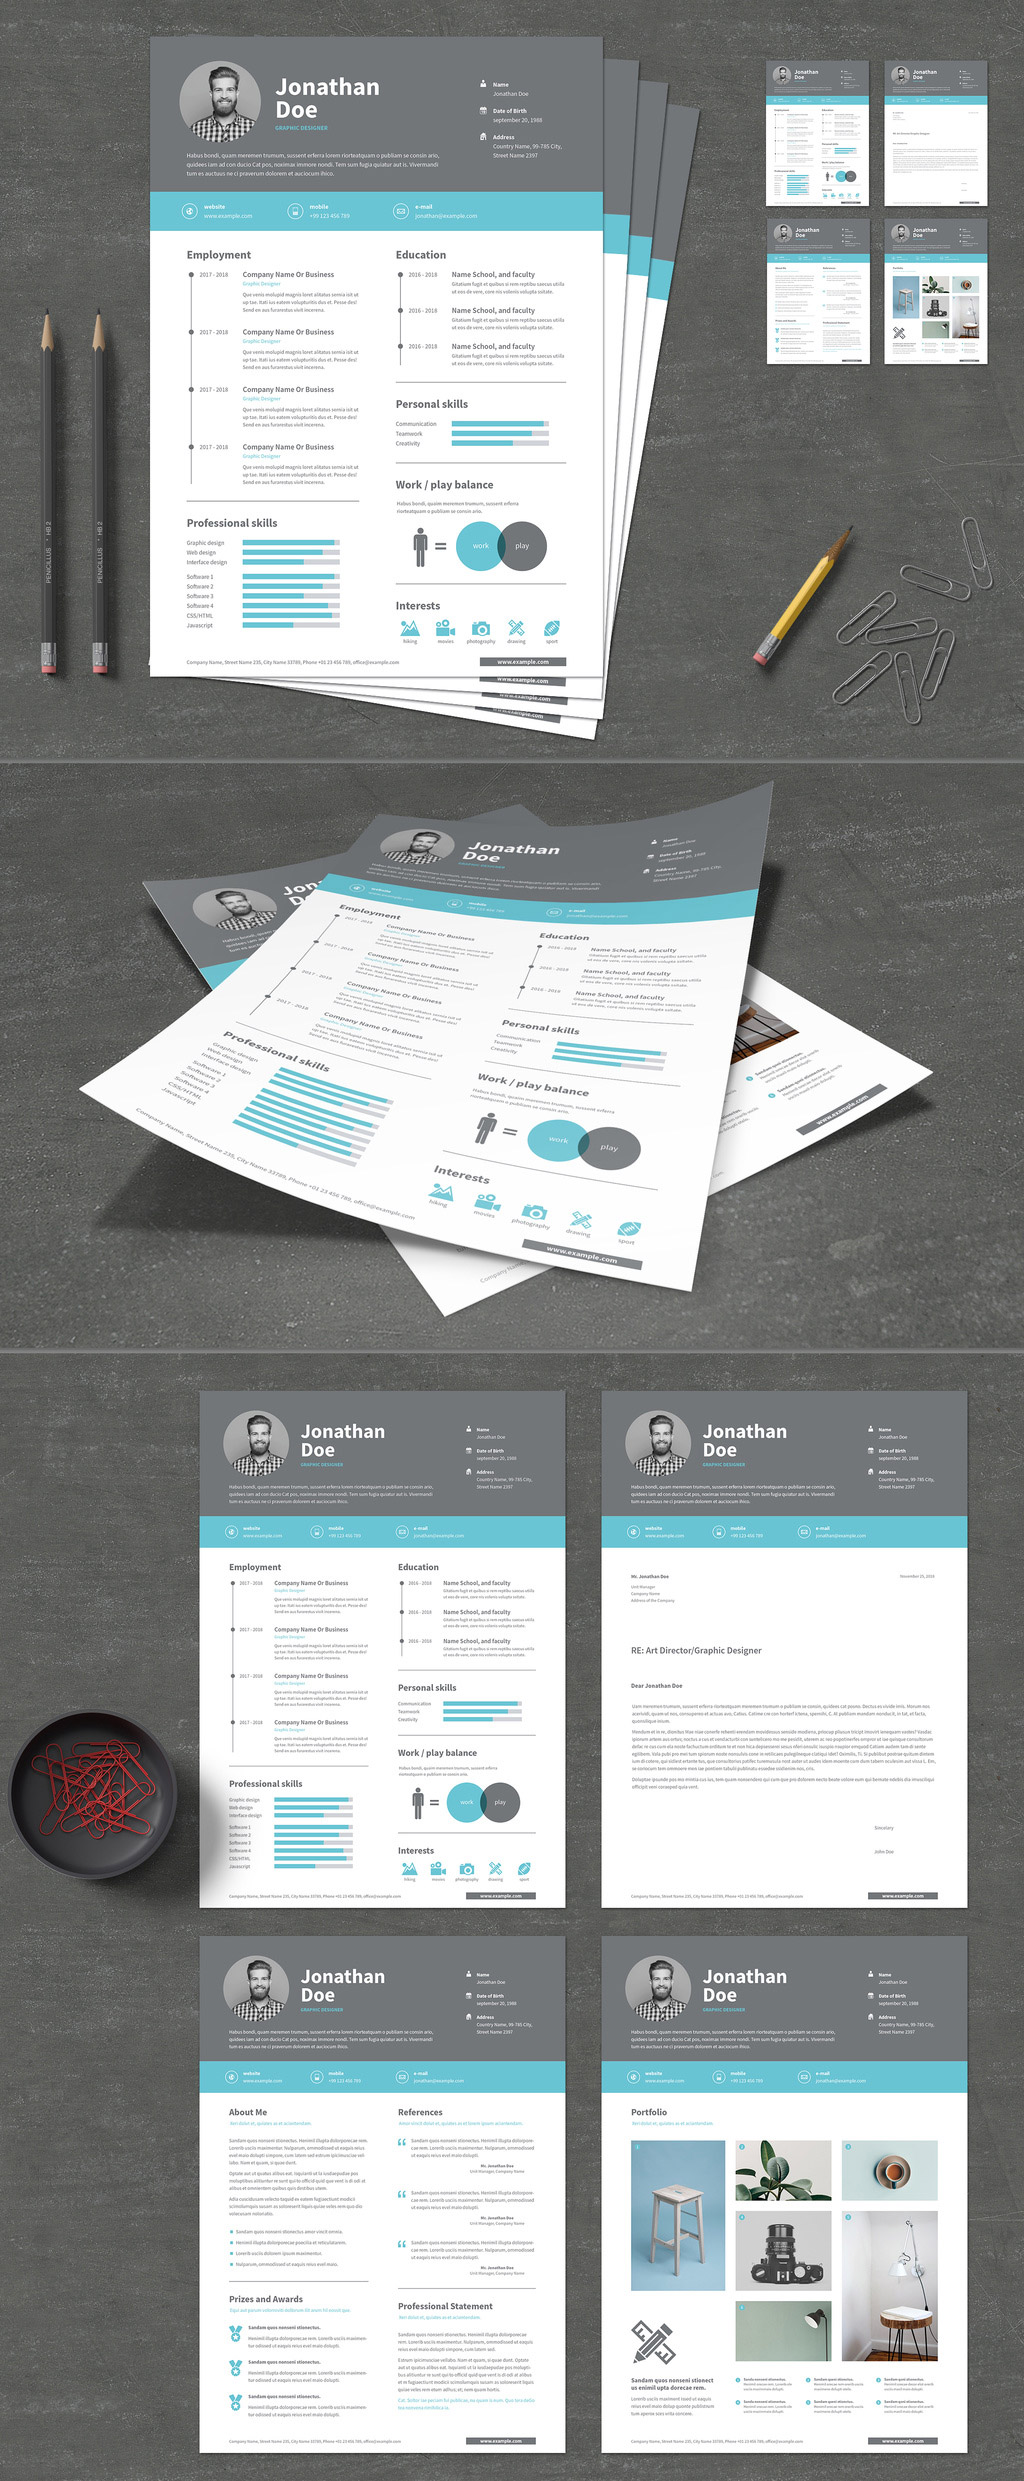 Resume and cover letter template with gray header and blue accents.